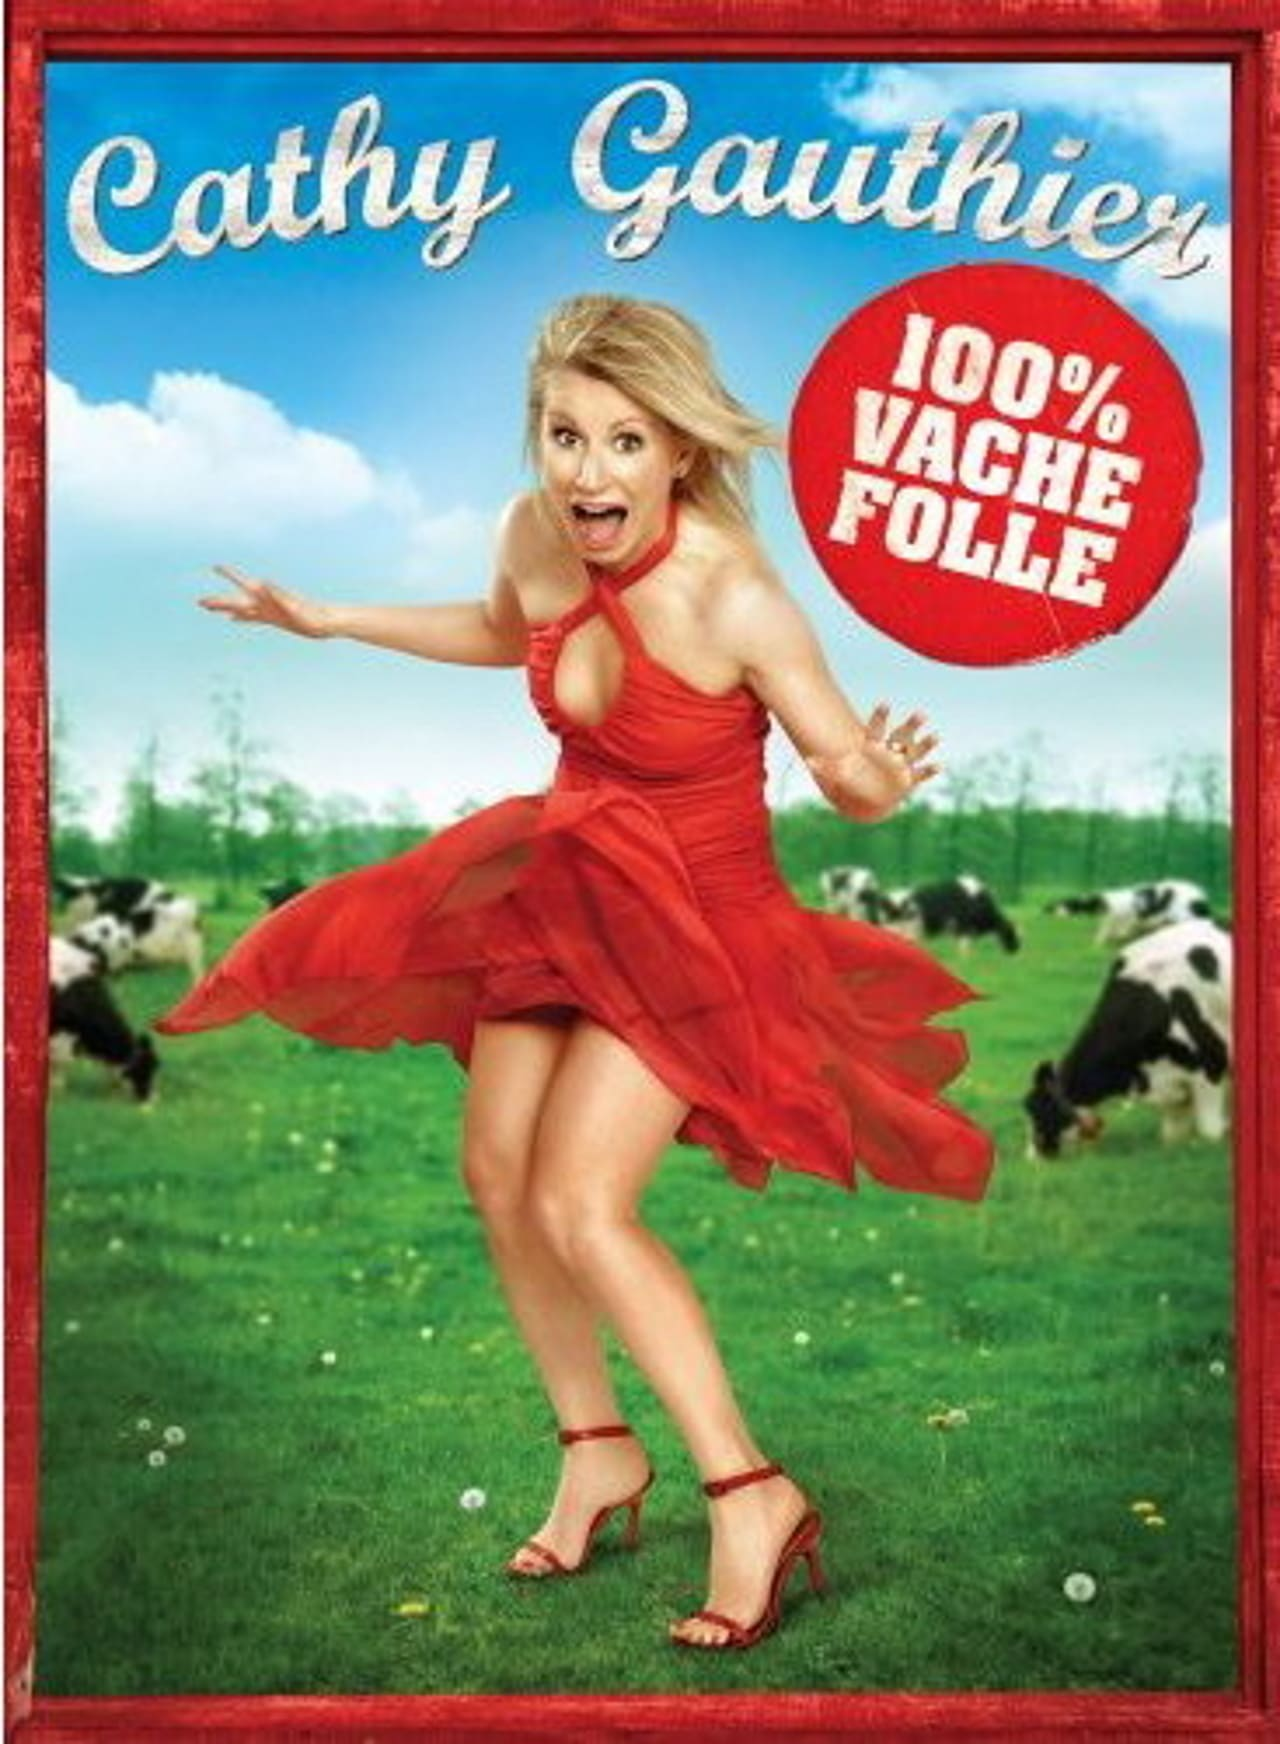 Cathy Gauthier 100% Vache Folle